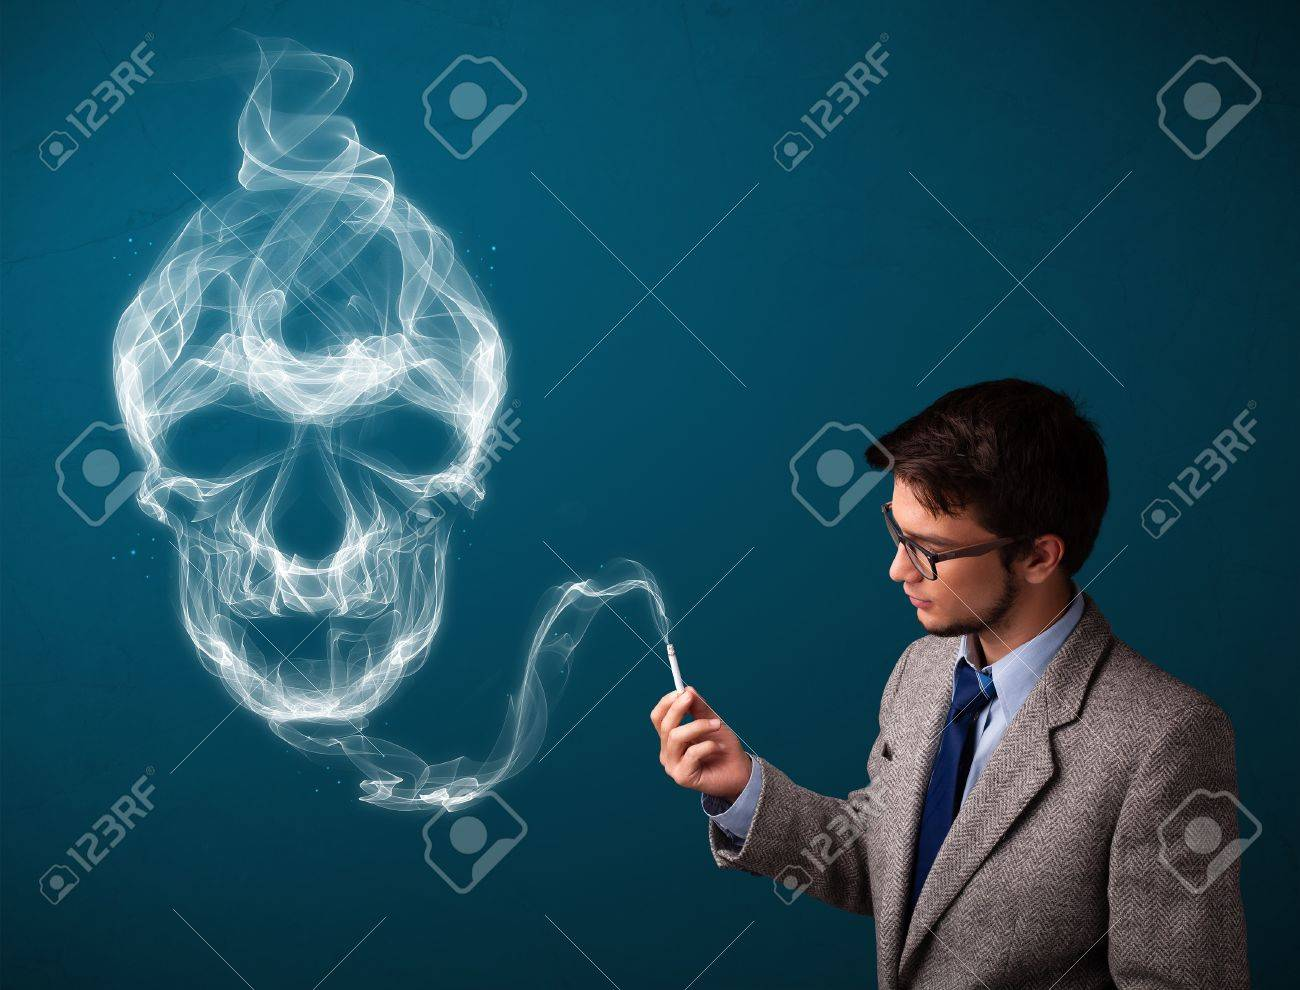 Handsome young man smoking dangerous cigarette with toxic skull smoke Stock Photo - 16746994